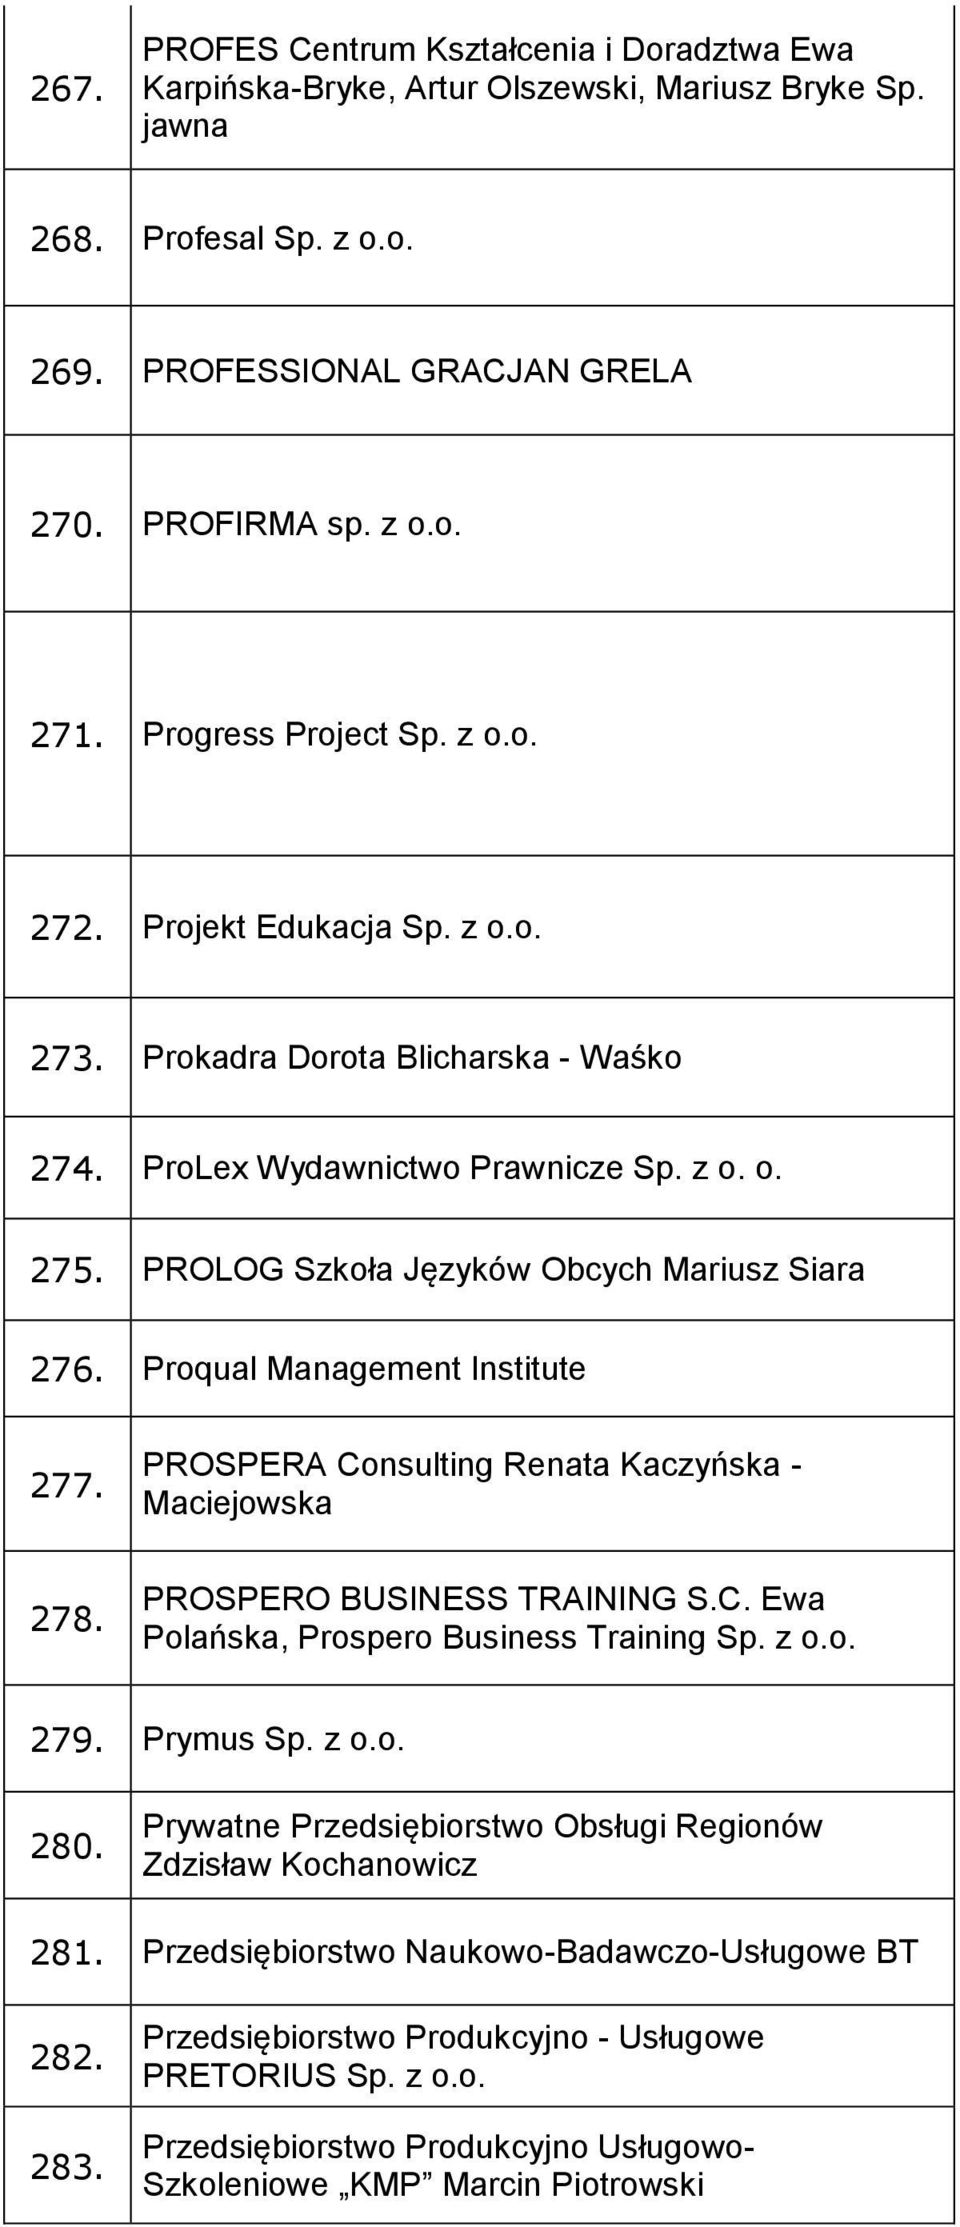 Proqual Management Institute 277. 278. PROSPERA Consulting Renata Kaczyńska - Maciejowska PROSPERO BUSINESS TRAINING S.C. Ewa Polańska, Prospero Business Training Sp. z o.o. 279. Prymus Sp. z o.o. 280.